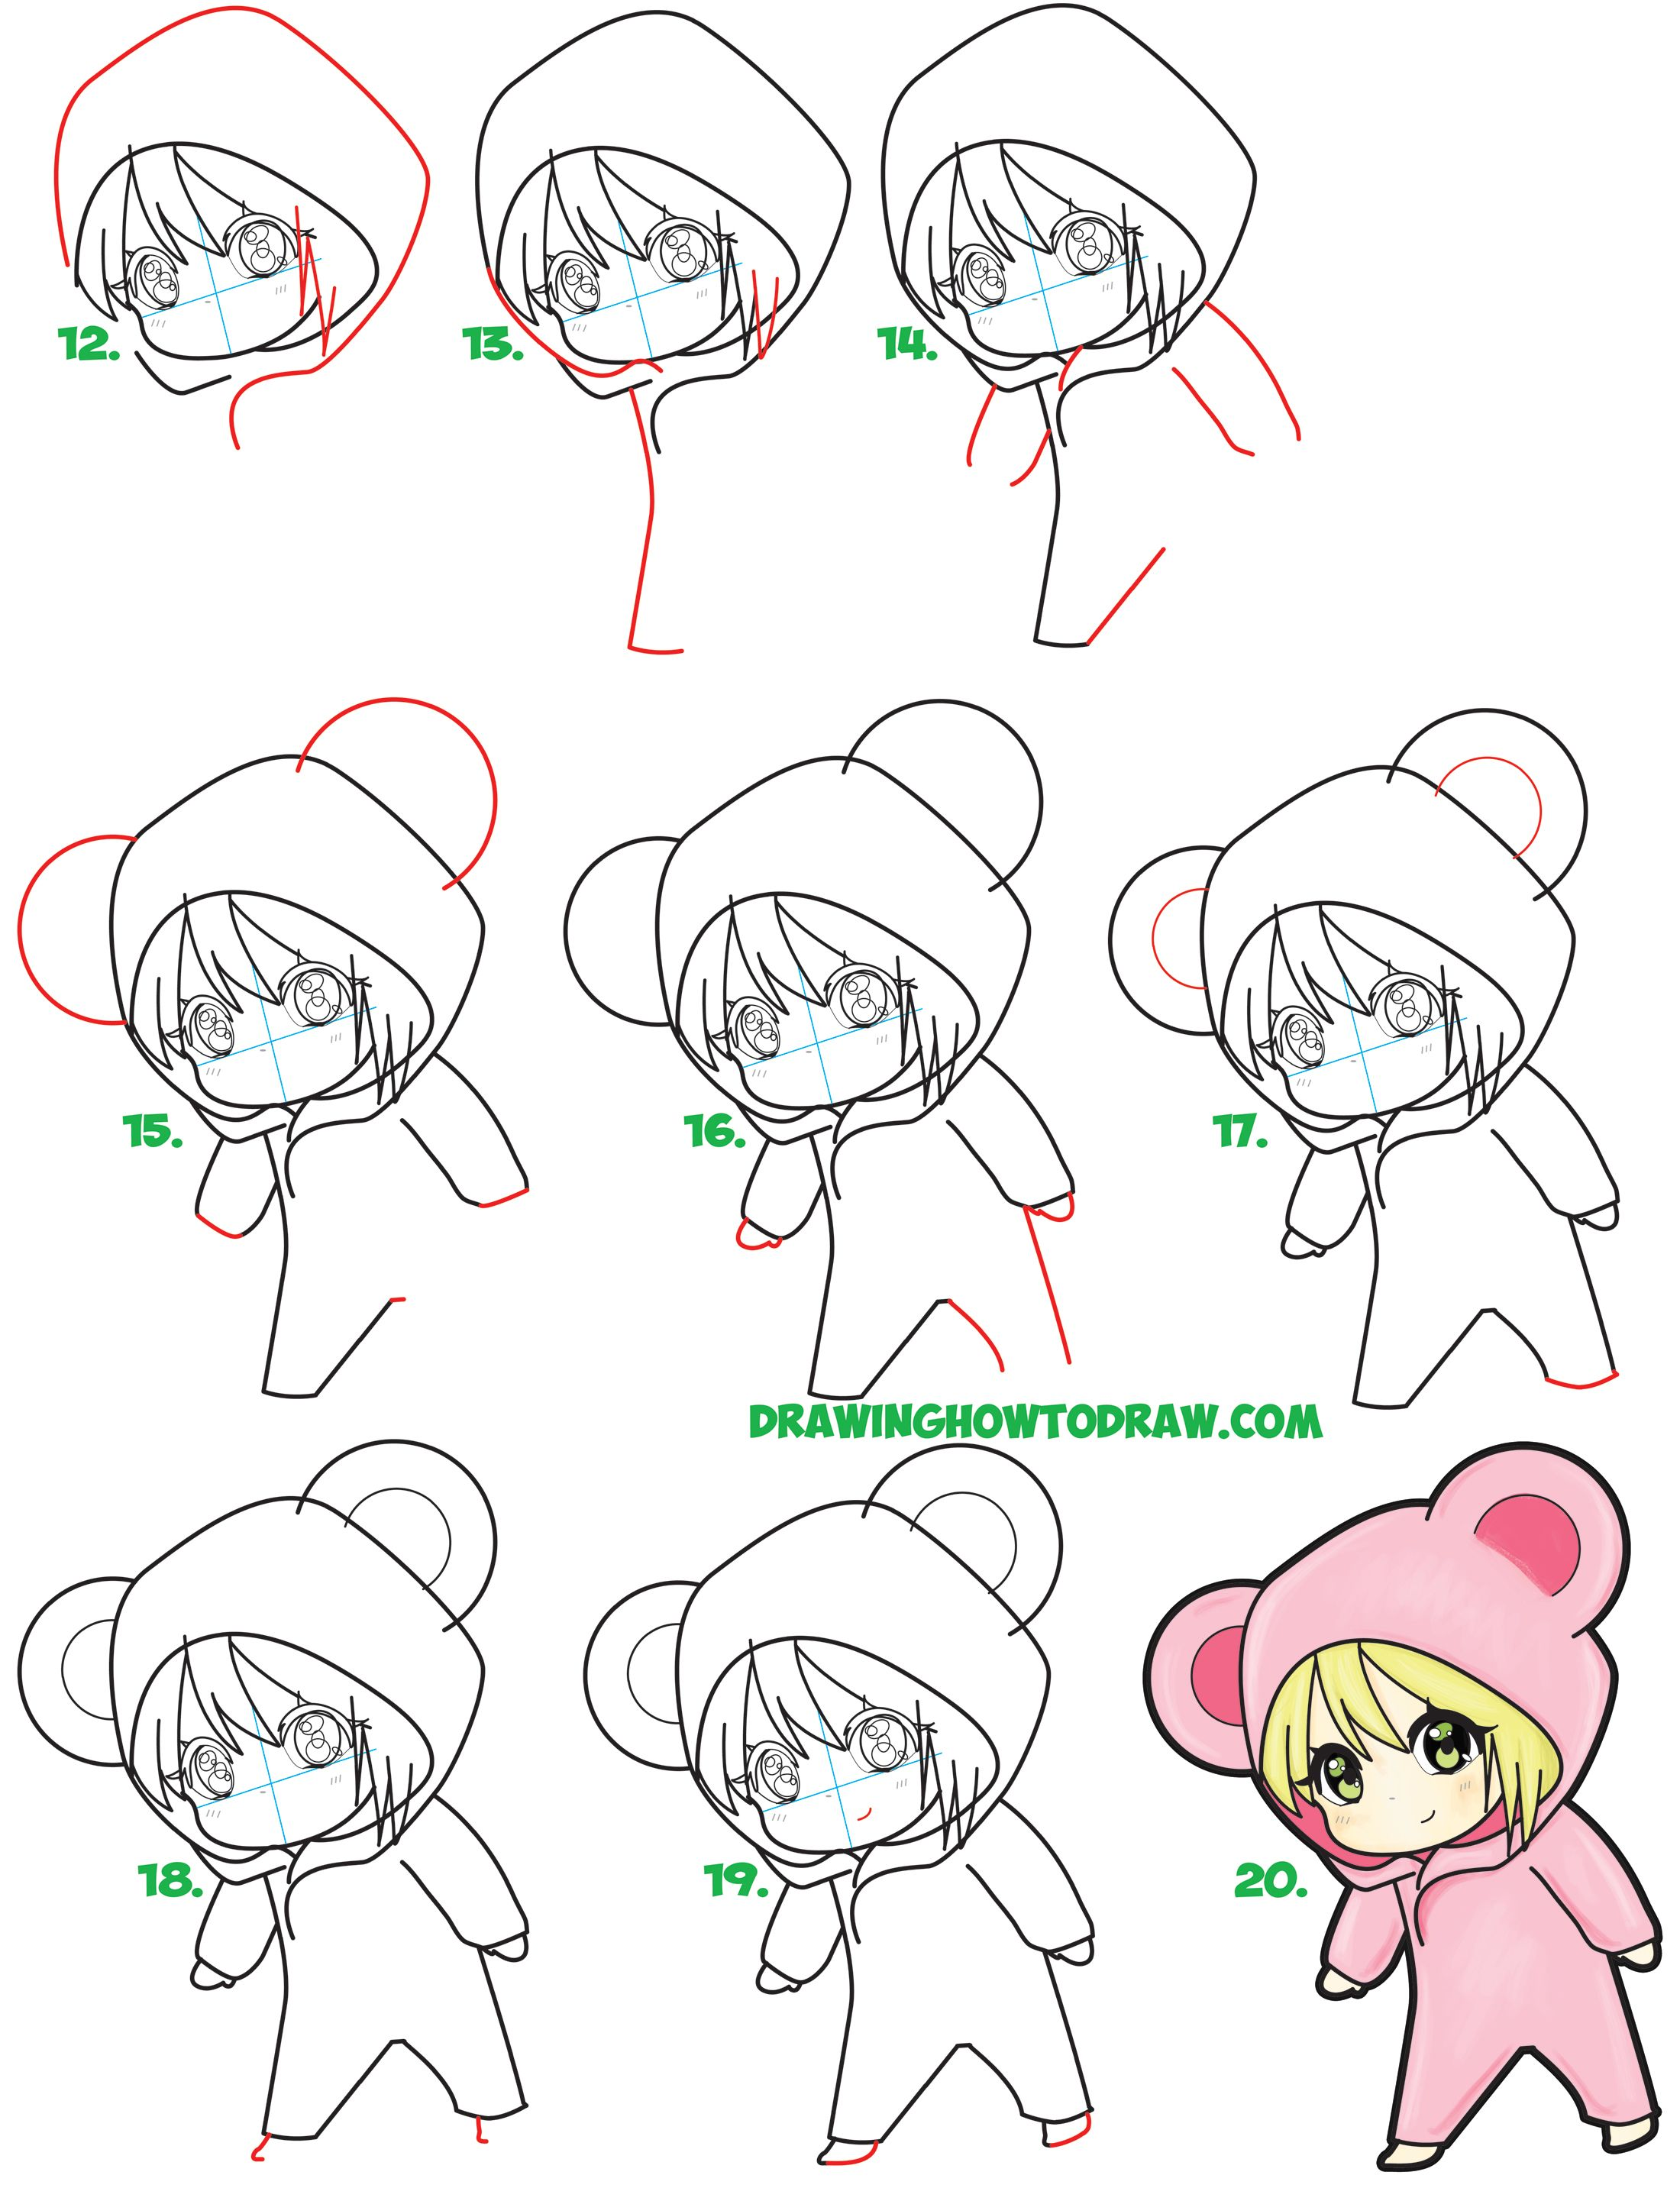 Learn how to draw a cute chibi girl dressed in a hooded bear onesie costume with easy steps drawing lesson for kids